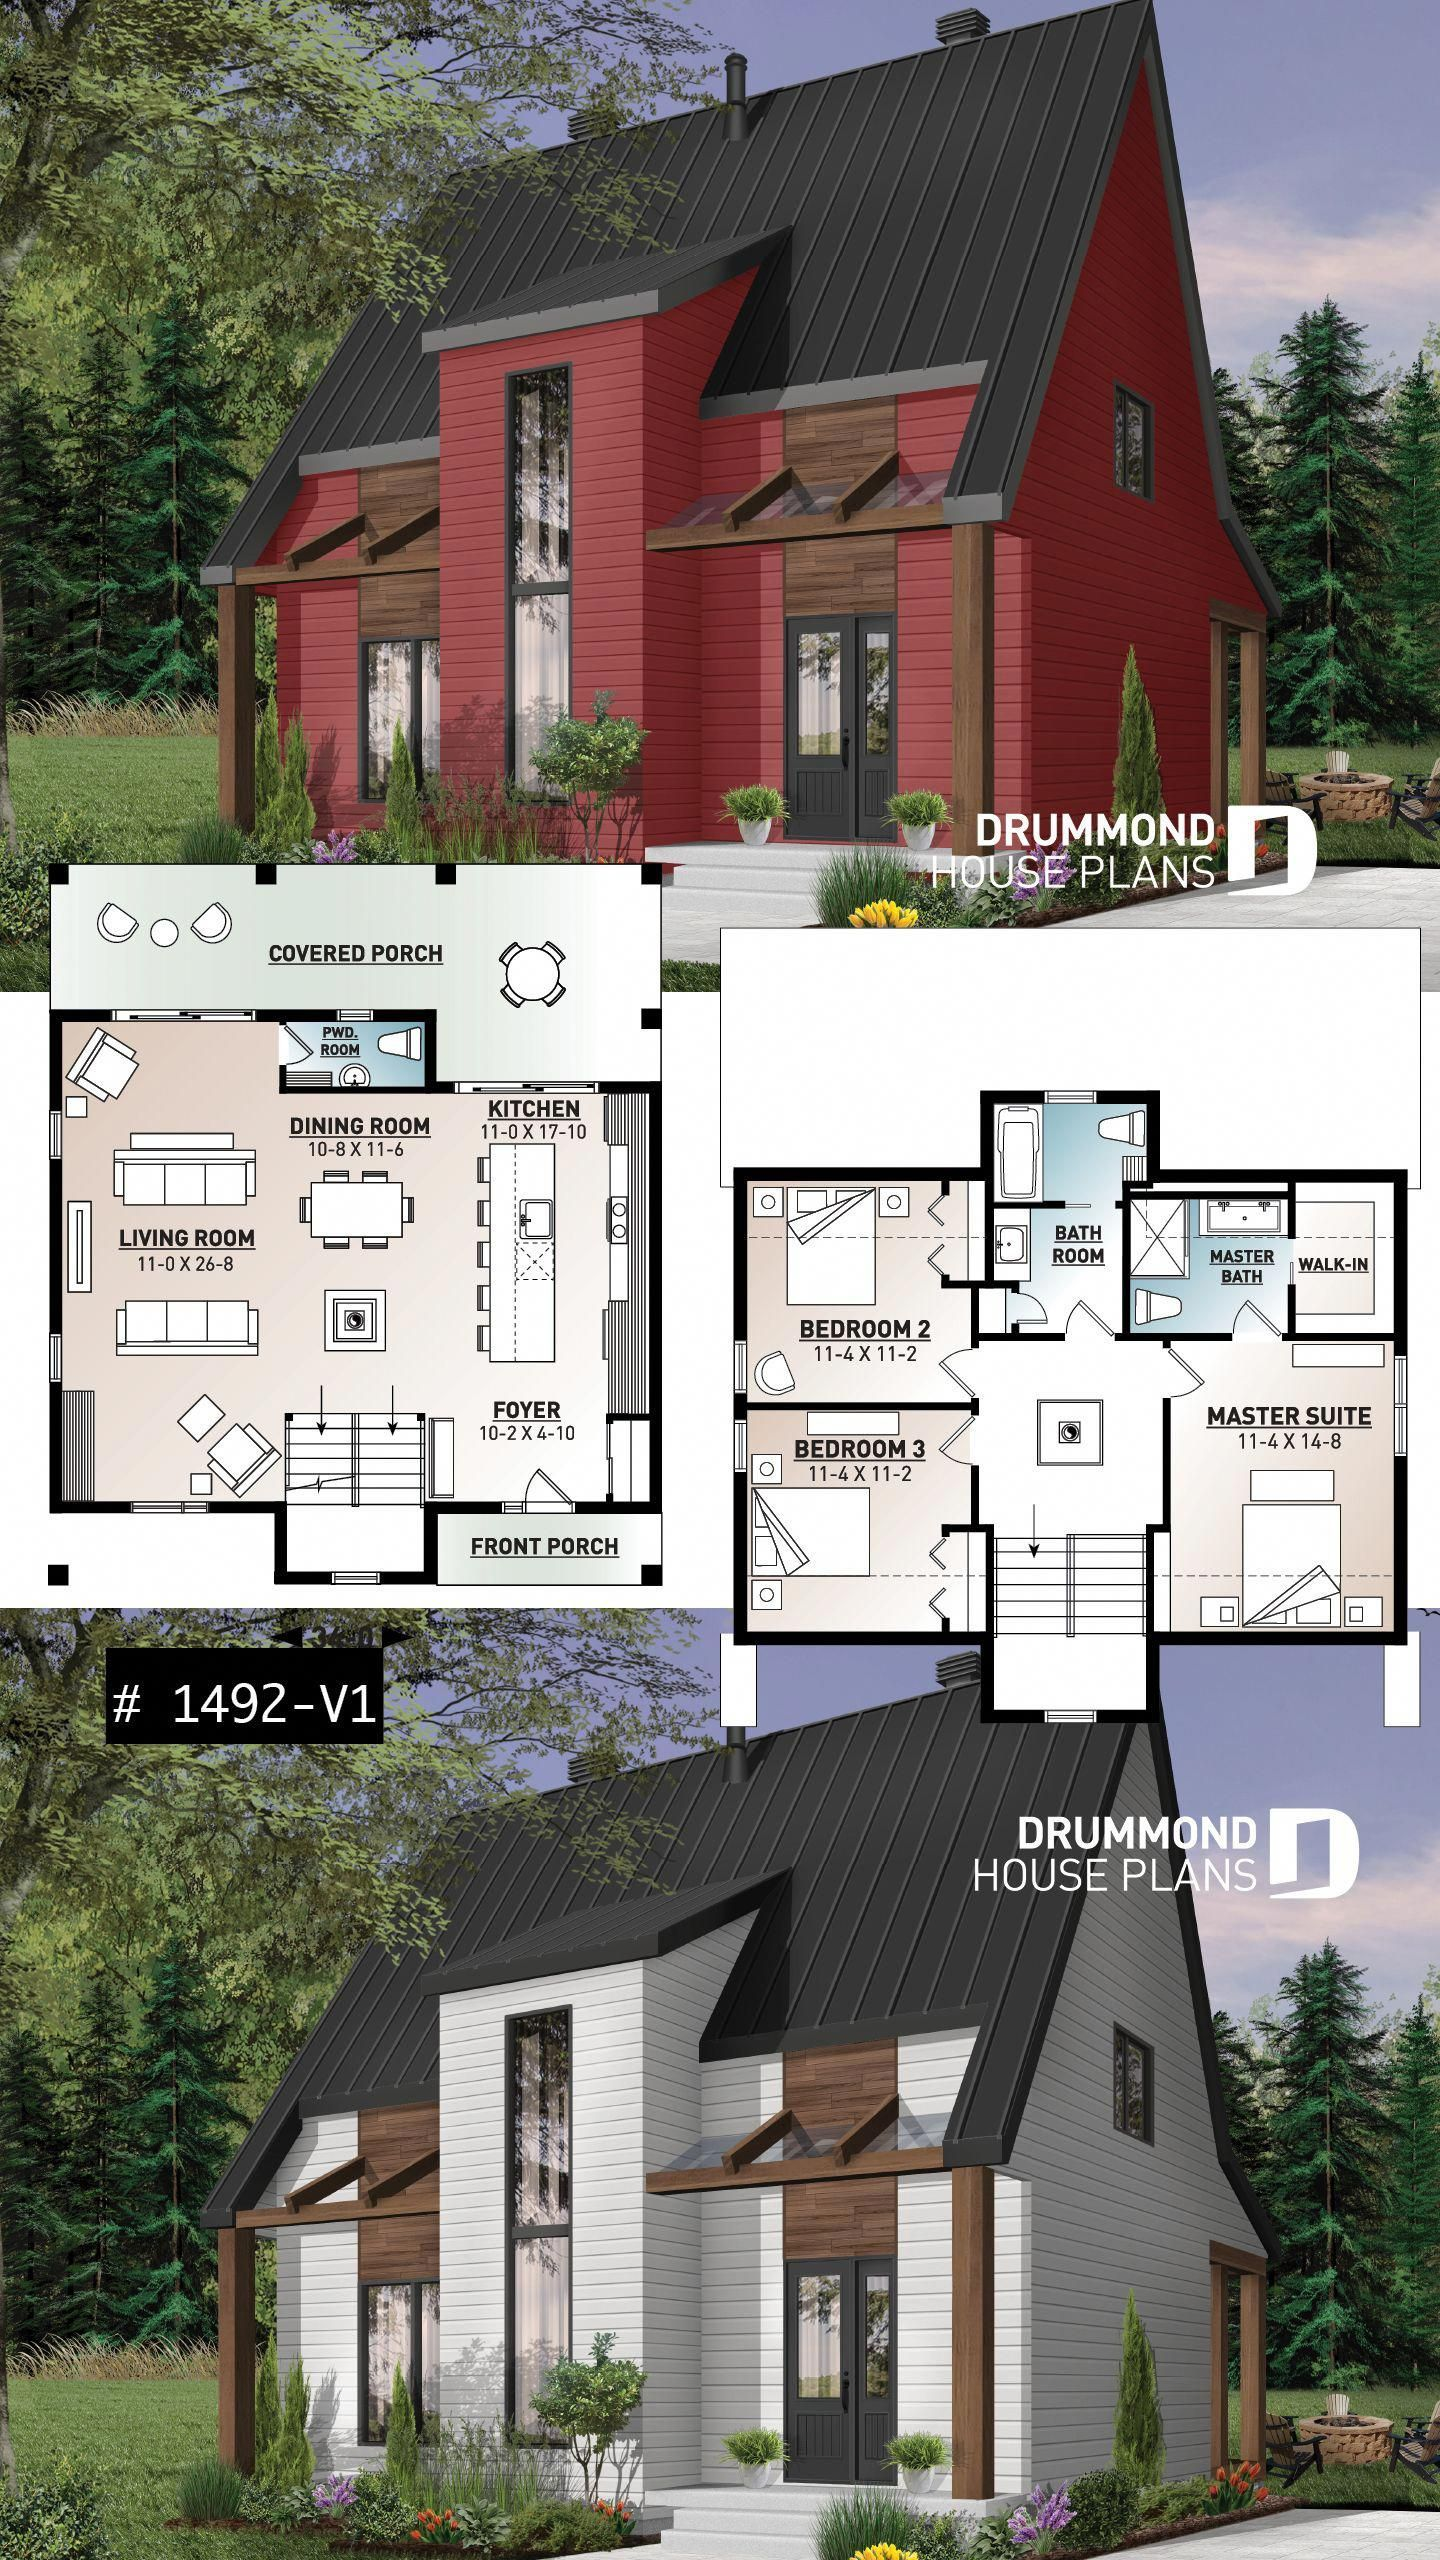 Pin By Christy Lahargoue On Home In 2020 Cottage House Plans Sims House Plans House Plans